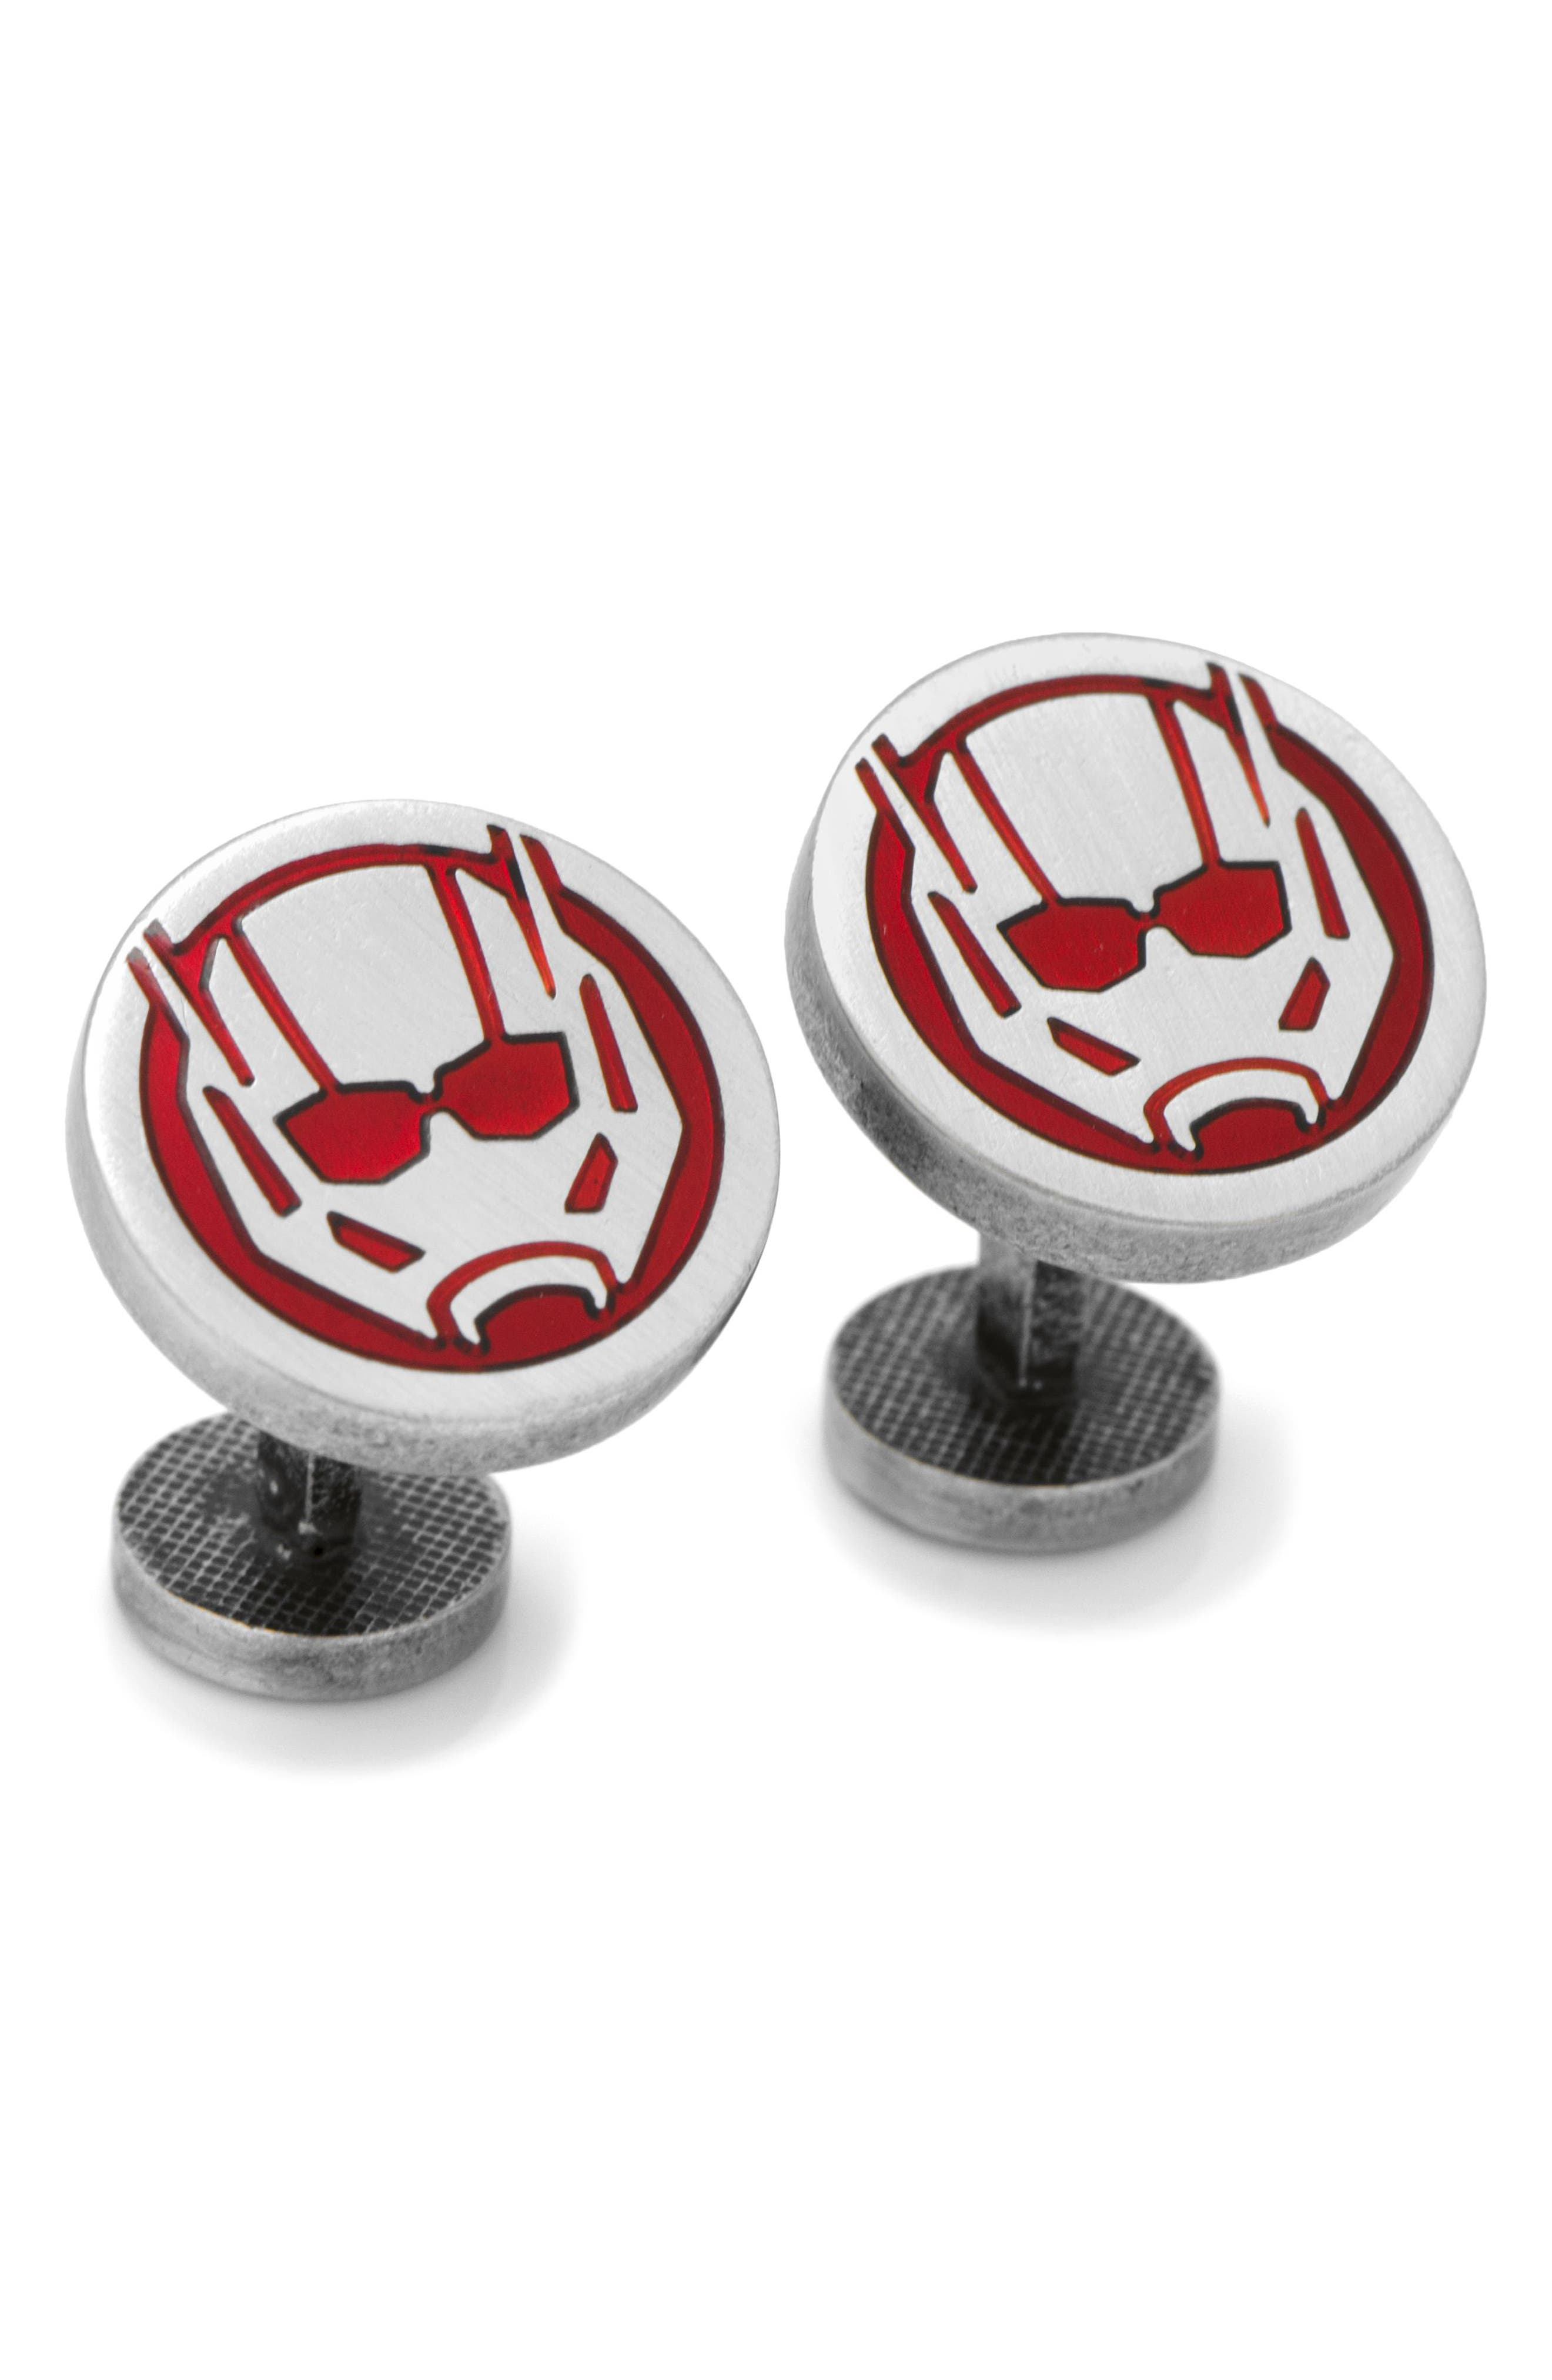 Ant-Man Cuff Links,                             Main thumbnail 1, color,                             RED